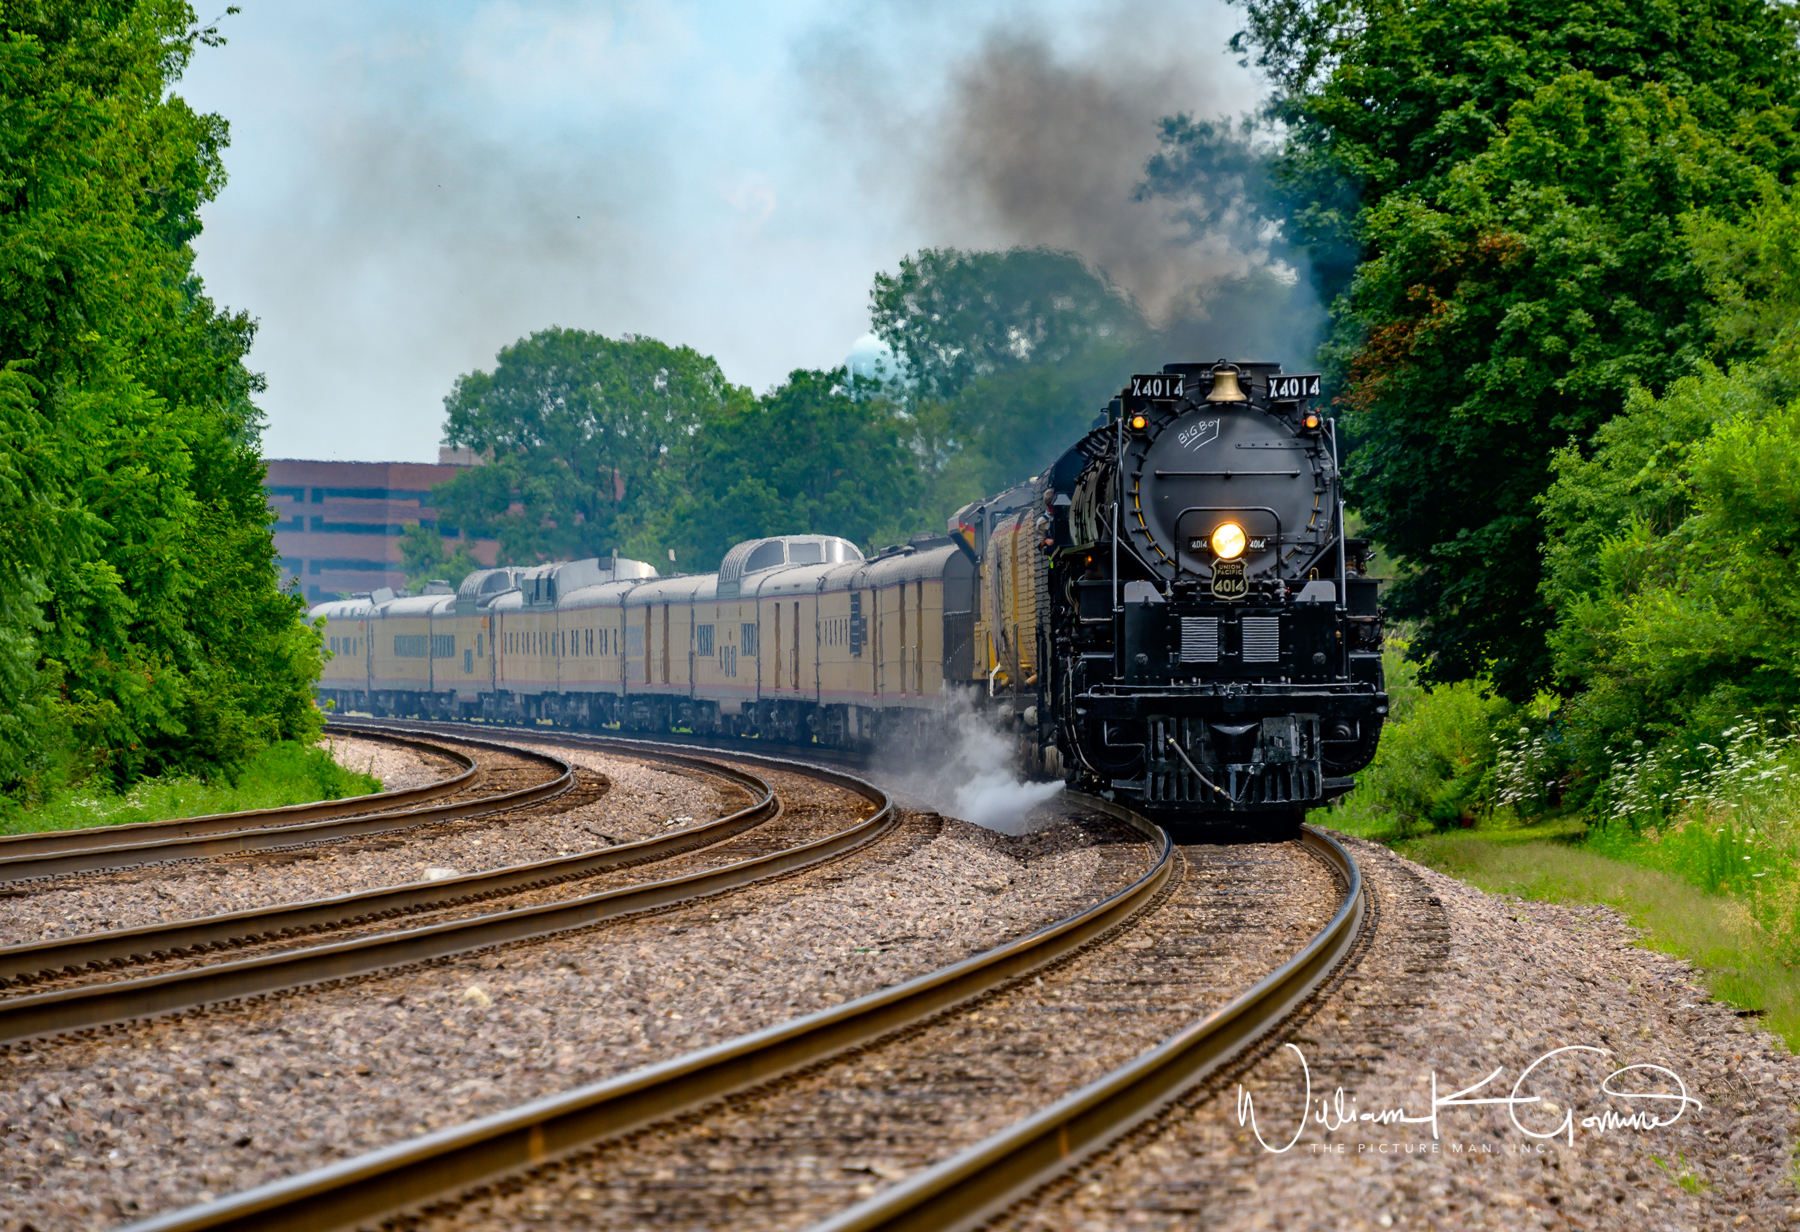 Big Boy 4014 coming around the bend at Winfield Il.